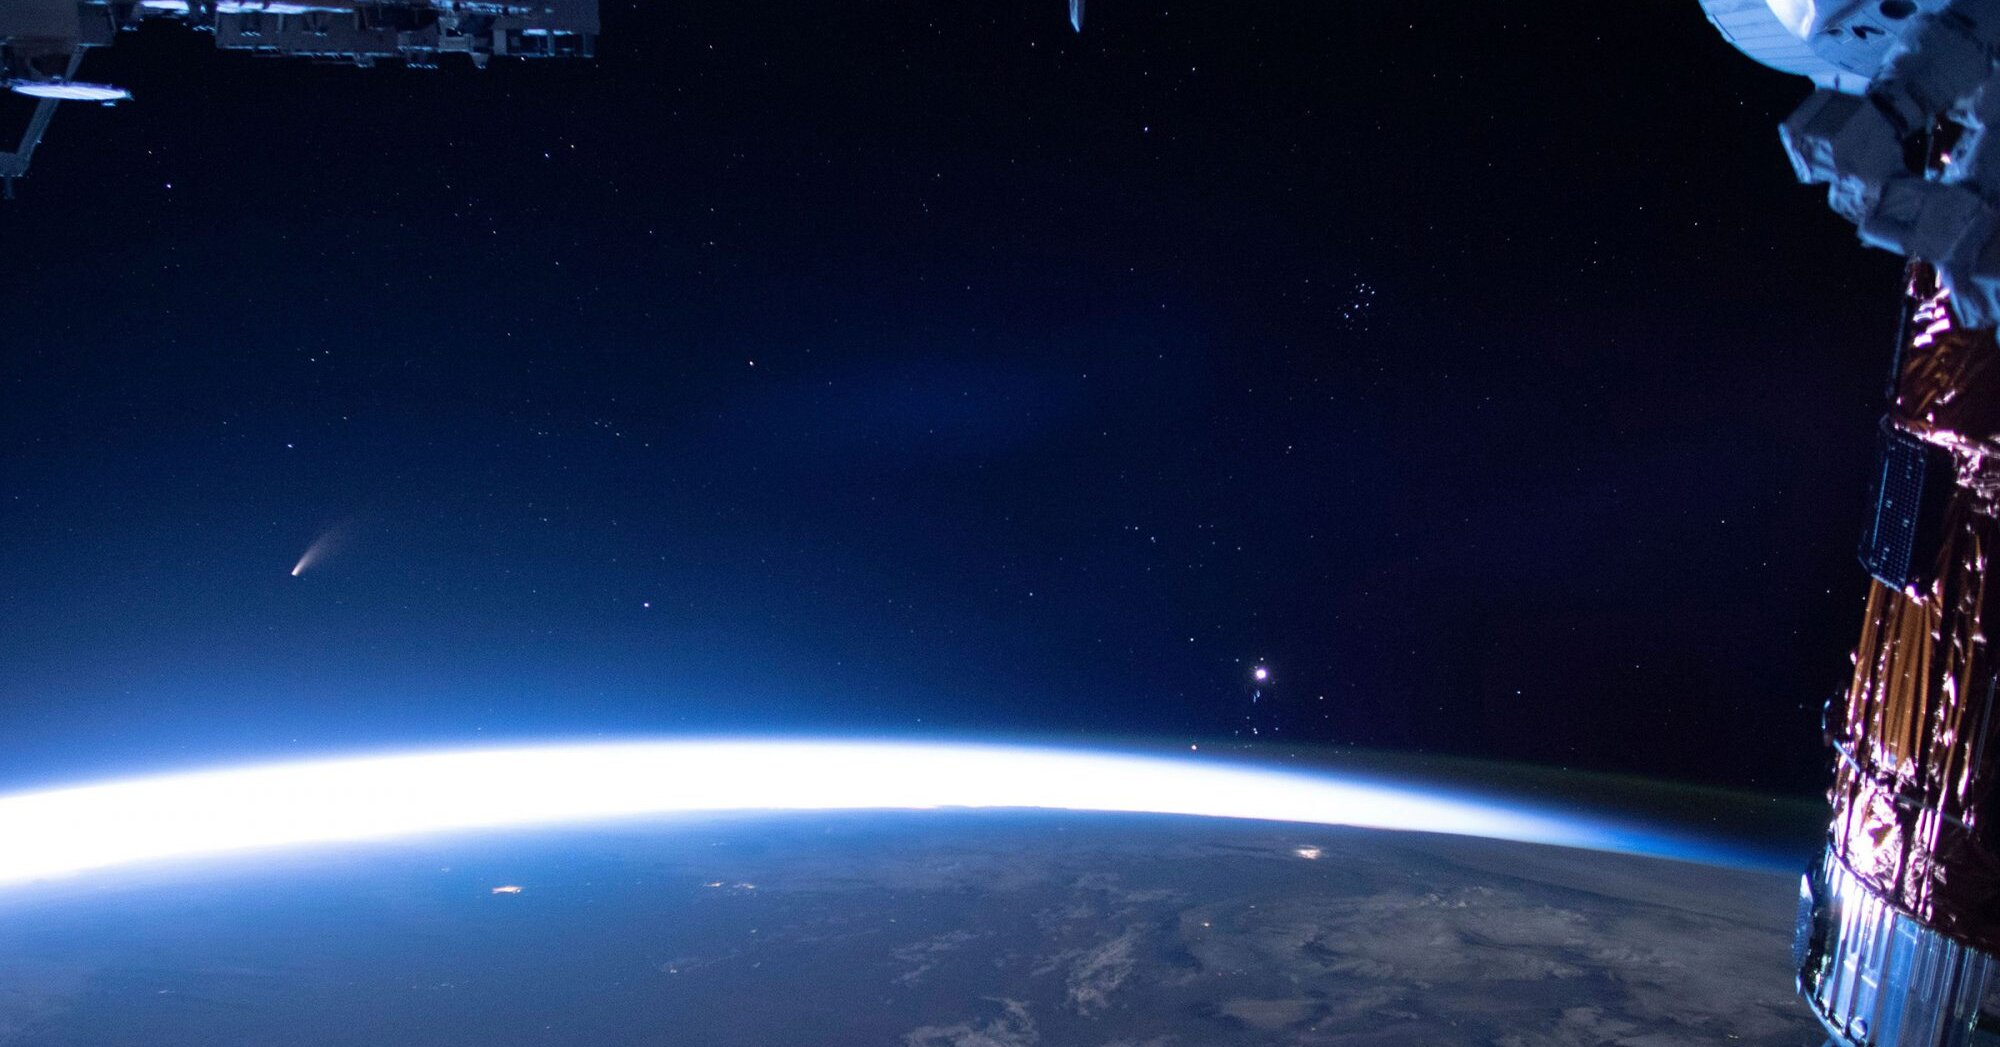 Watch Neowise Comet Zip Past Earth in 'Beautiful' Video from the International Space Station